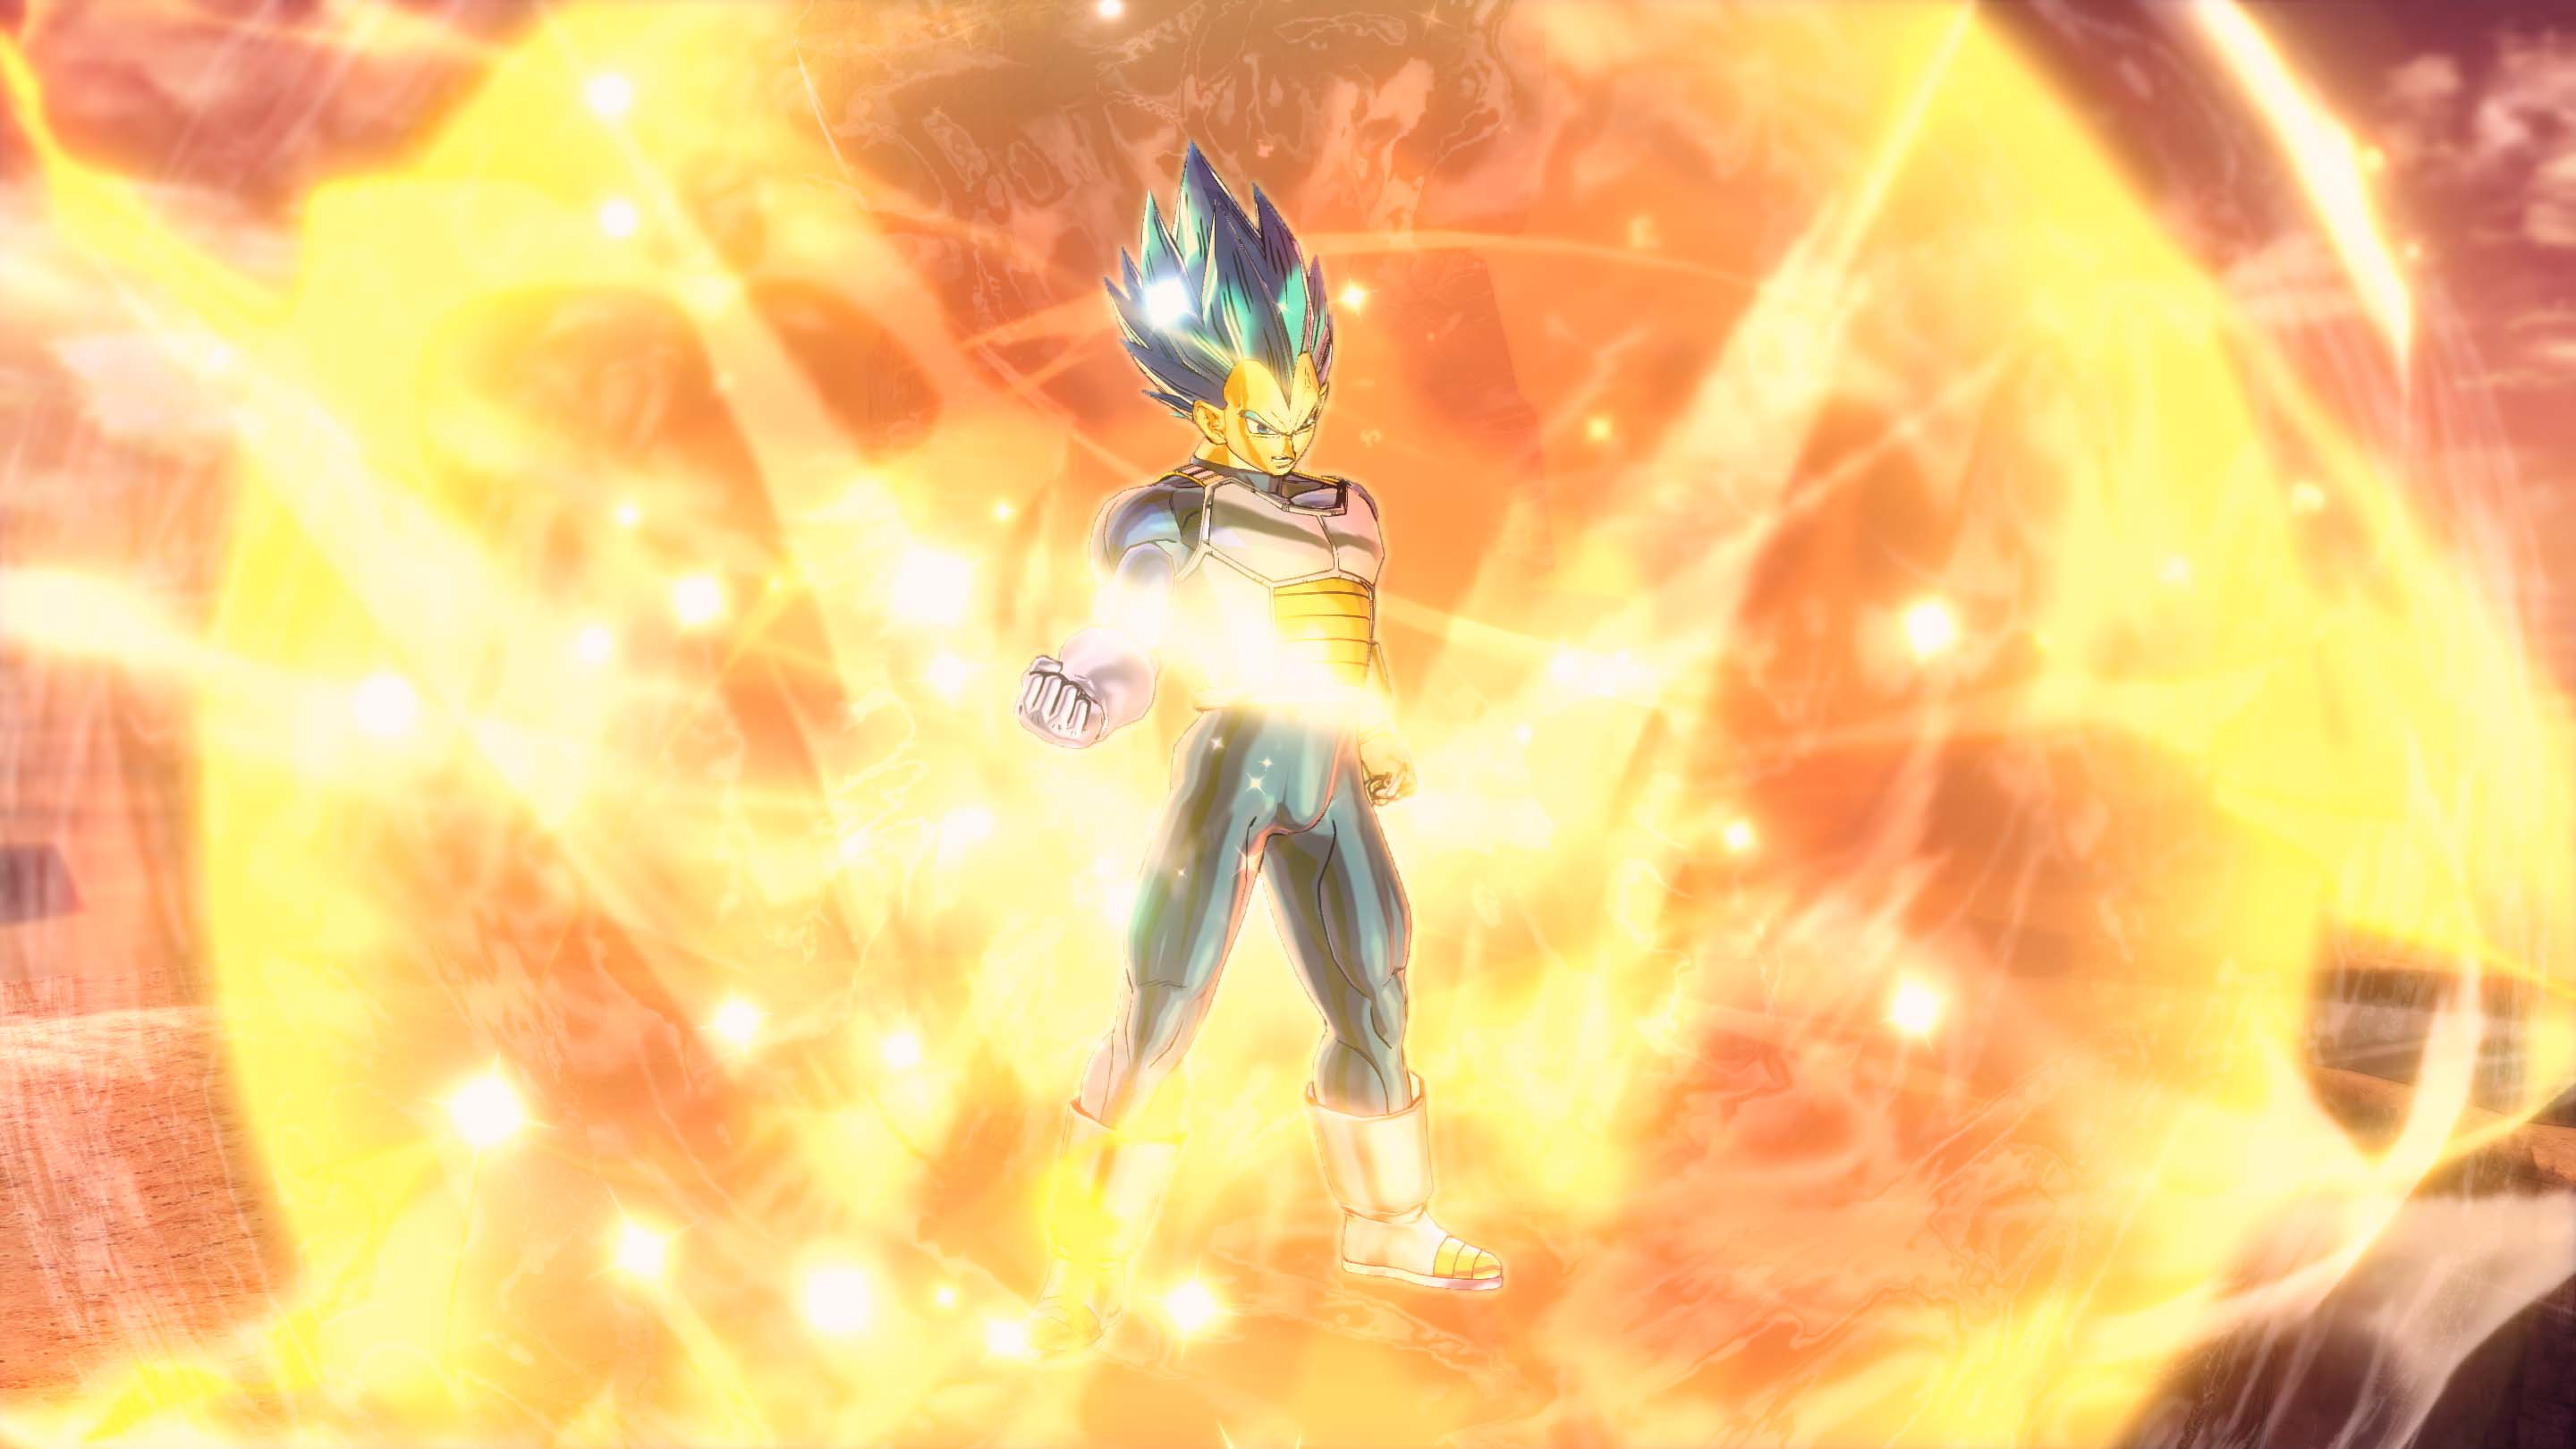 Dragon Ball Xenoverse 2 Game Hd Games 4k Wallpapers Images